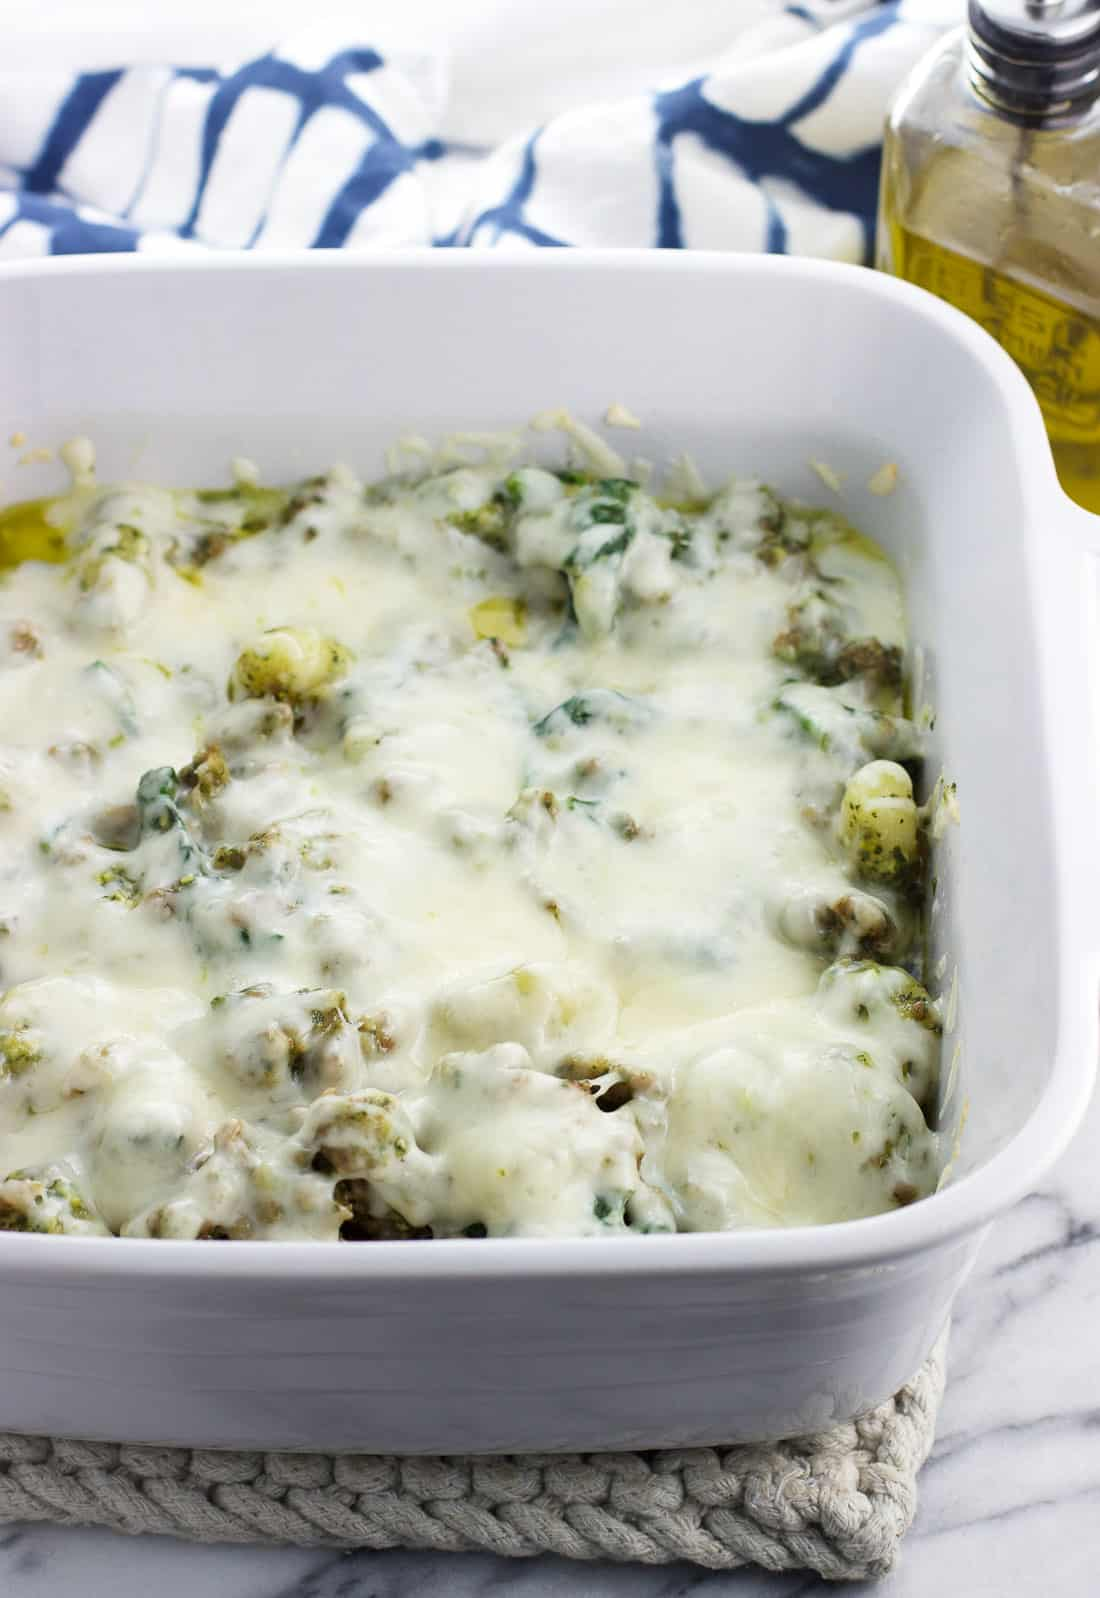 This pesto gnocchi bake features hot sausage and spinach for an easy, weeknight-ready meal. Total comfort food!